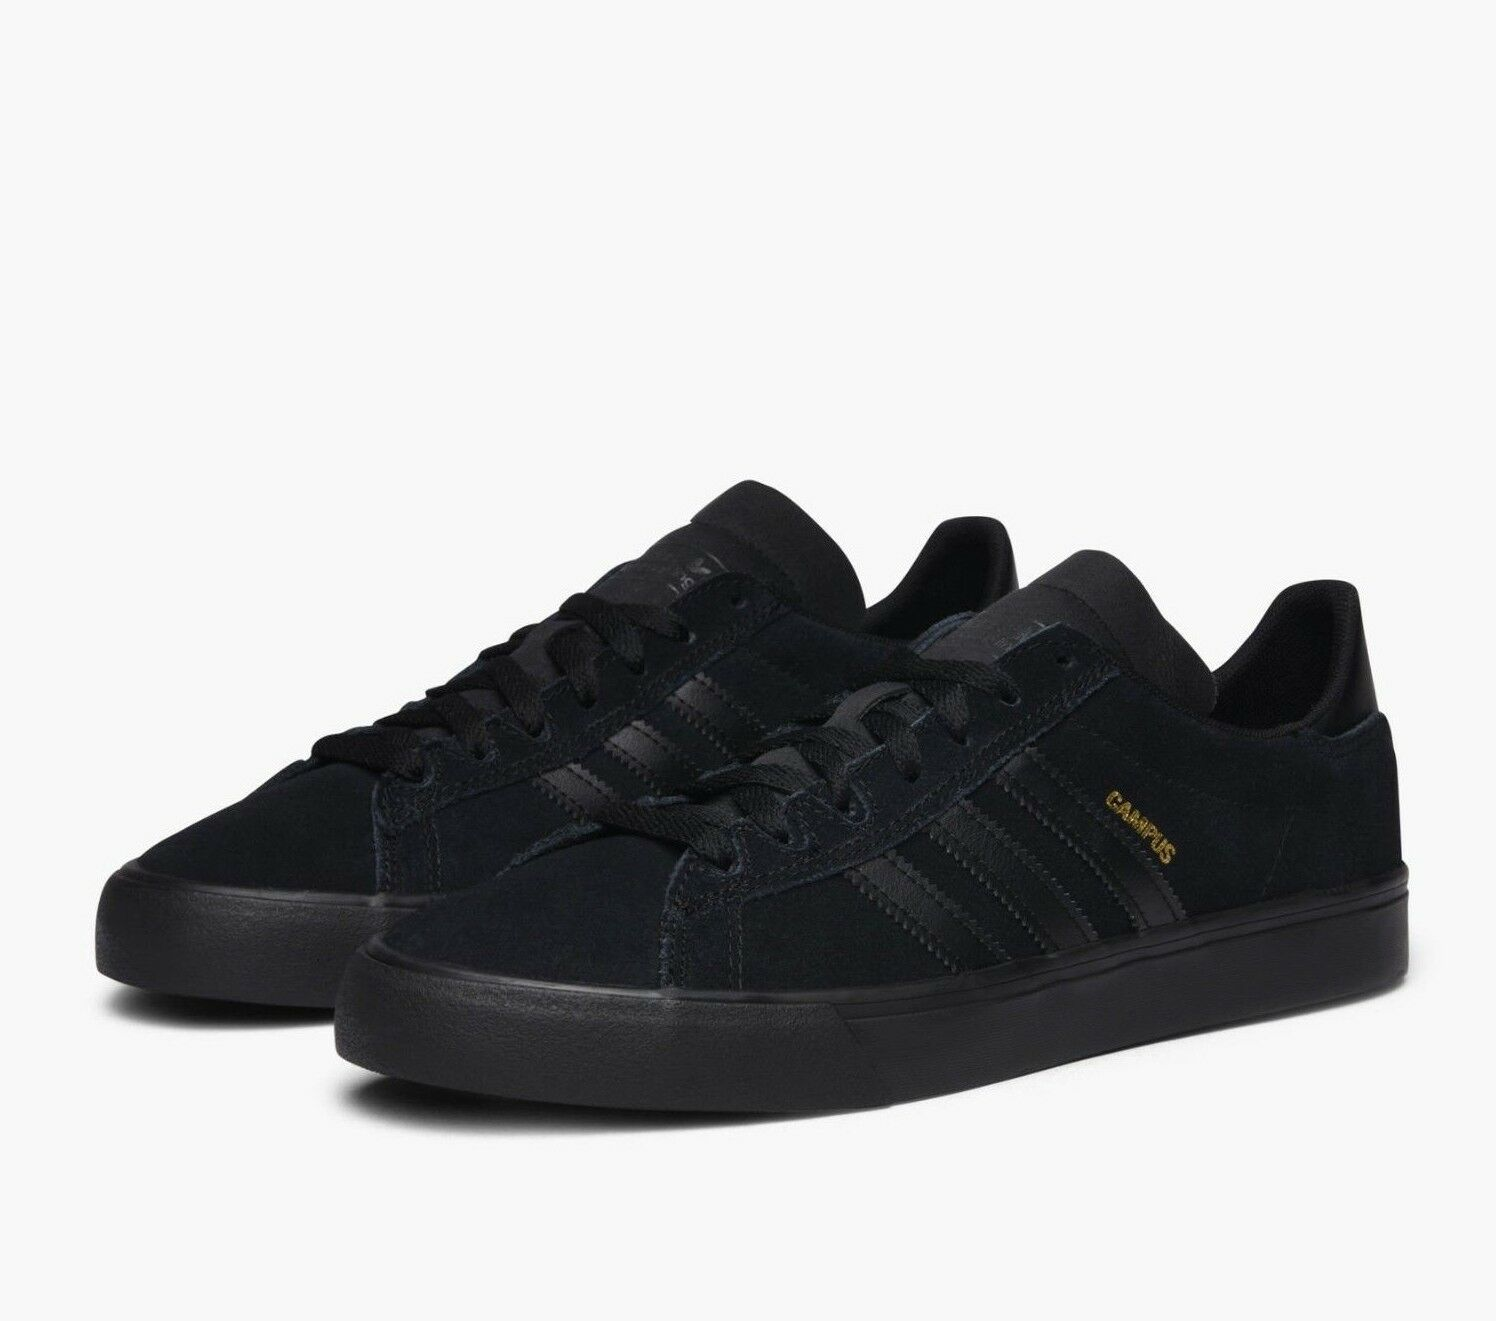 Adidas Originals Campus Vulc 2 Mens Trainers Suede Leather shoes BY3962 - Black